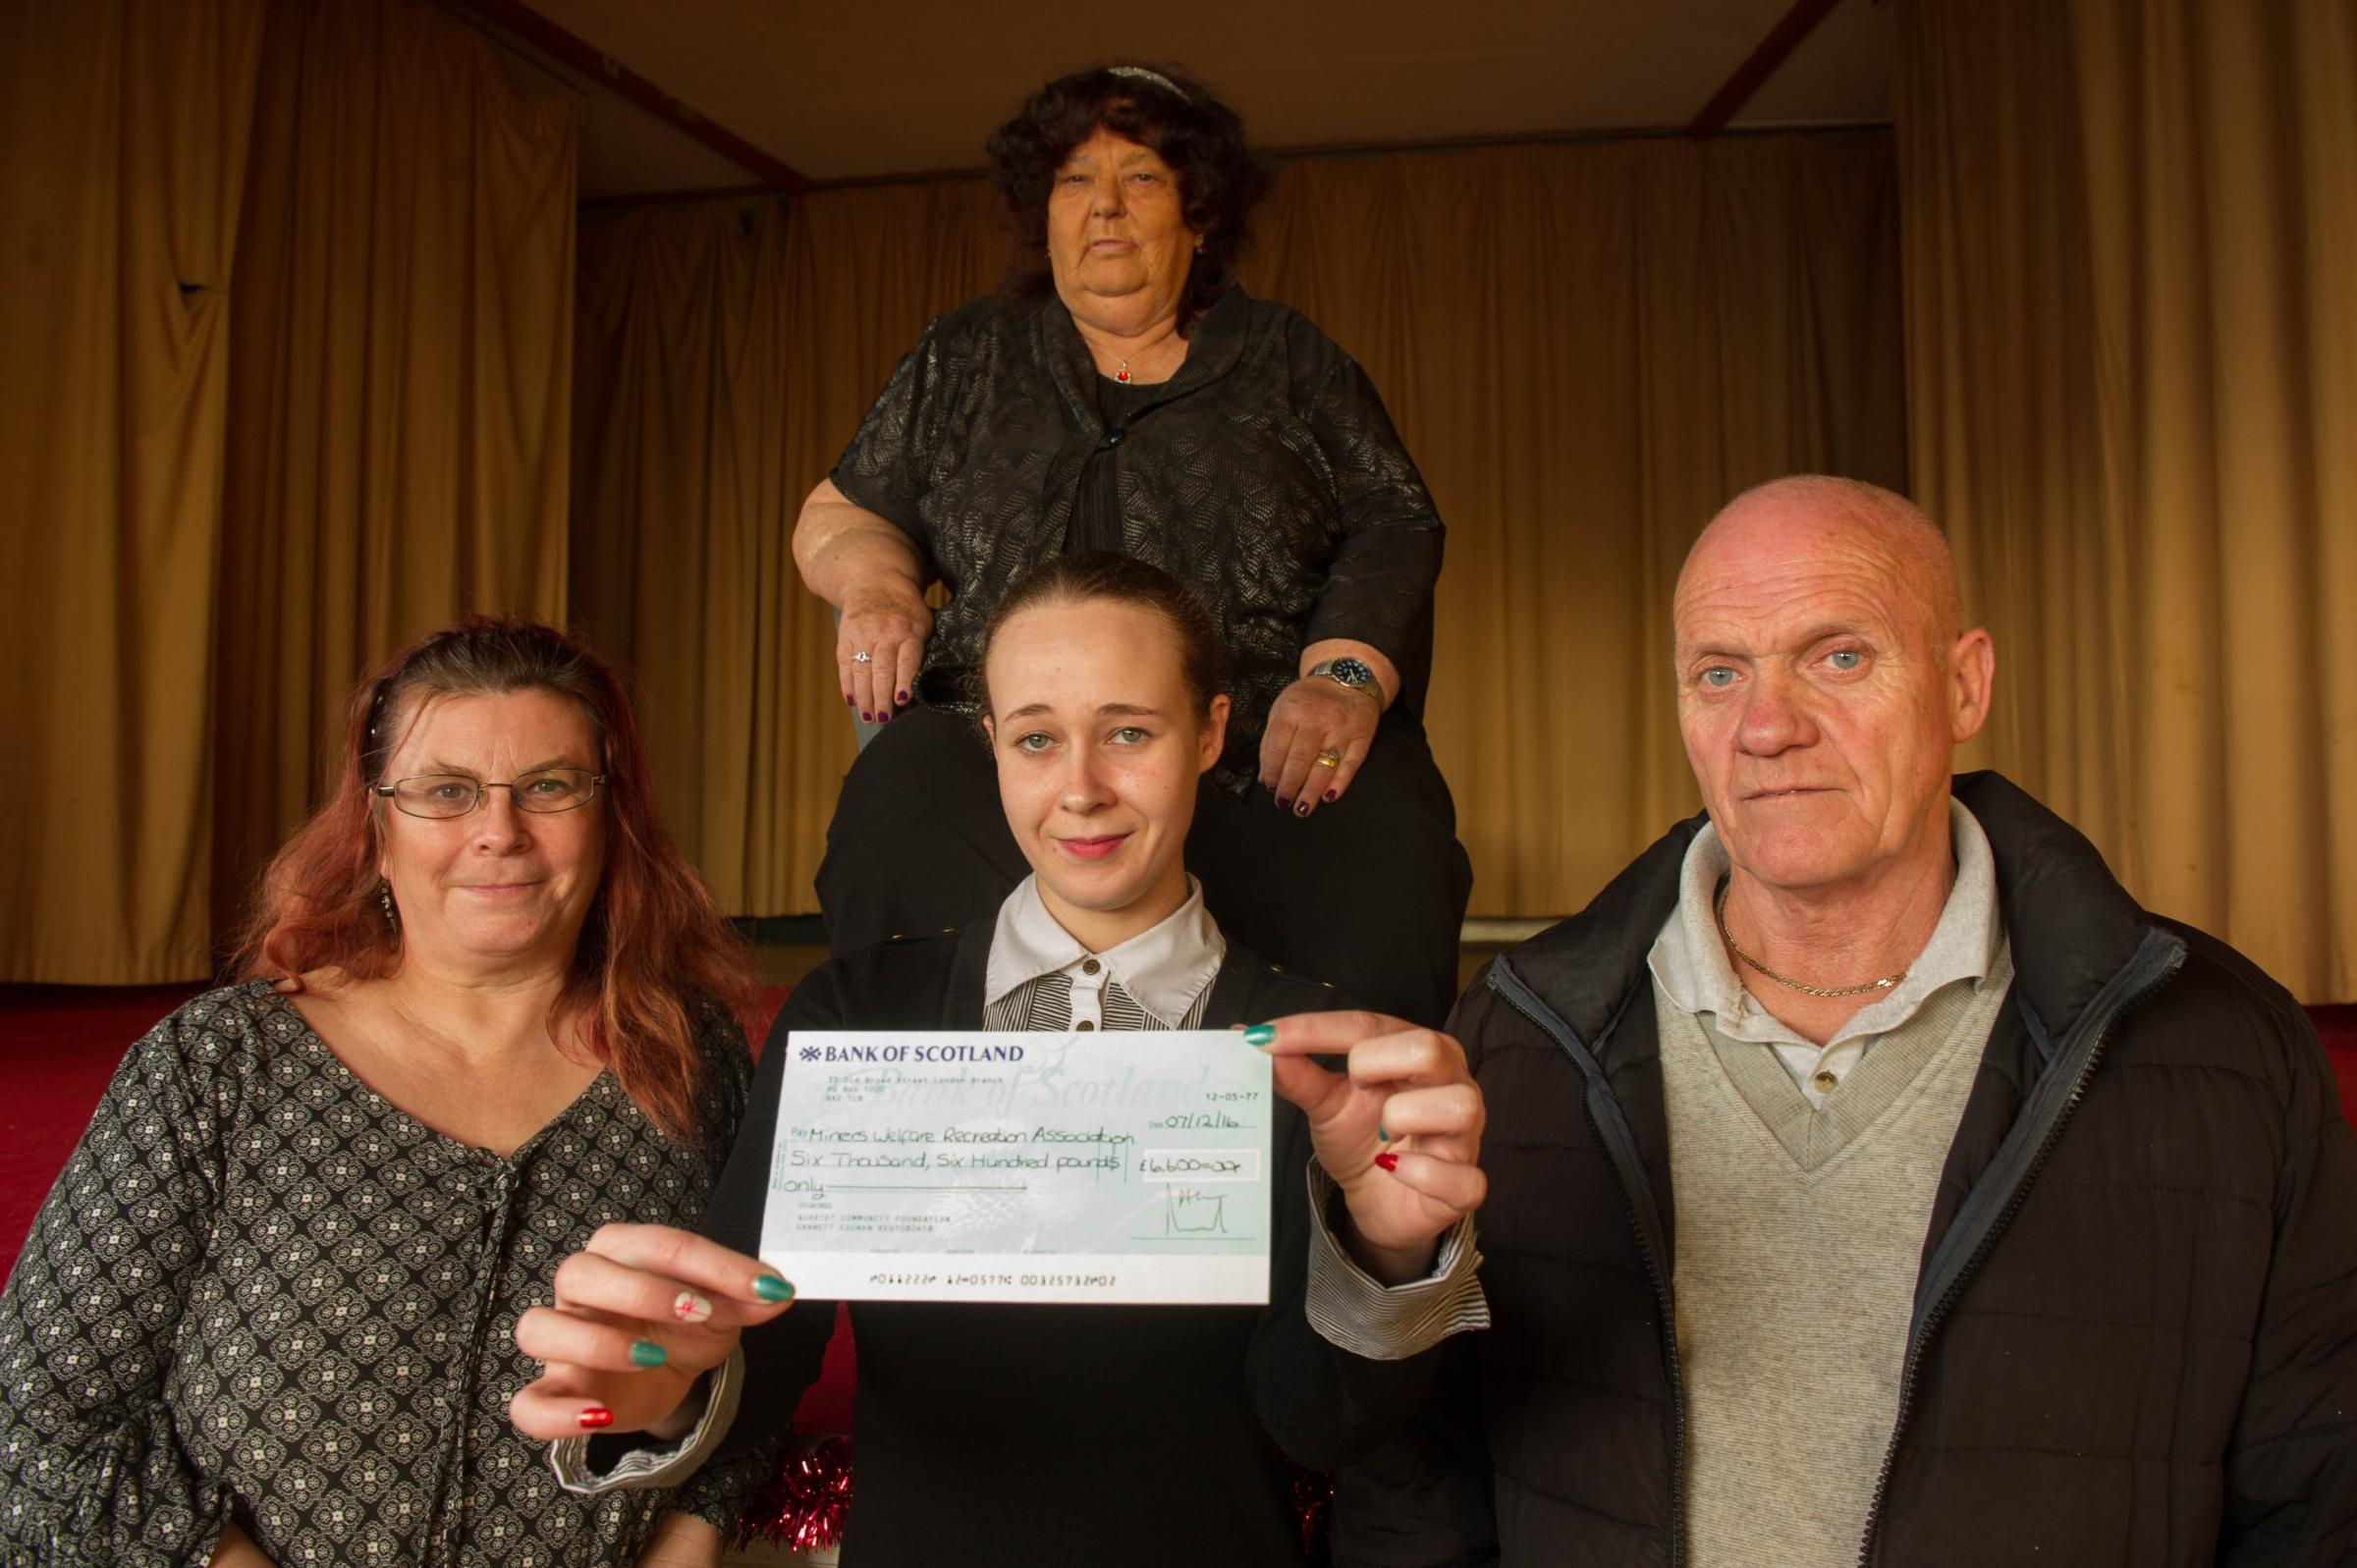 (L-R) Khadija Messaoudi (manager), Danielle Murphy (secretary), Julie Stadddon (treasurer) (rear) and Nigel Wheatsone (caretaker) of the Miners Welfare Recreation Association have been awarded £6,600 by the Gannett Foundation.